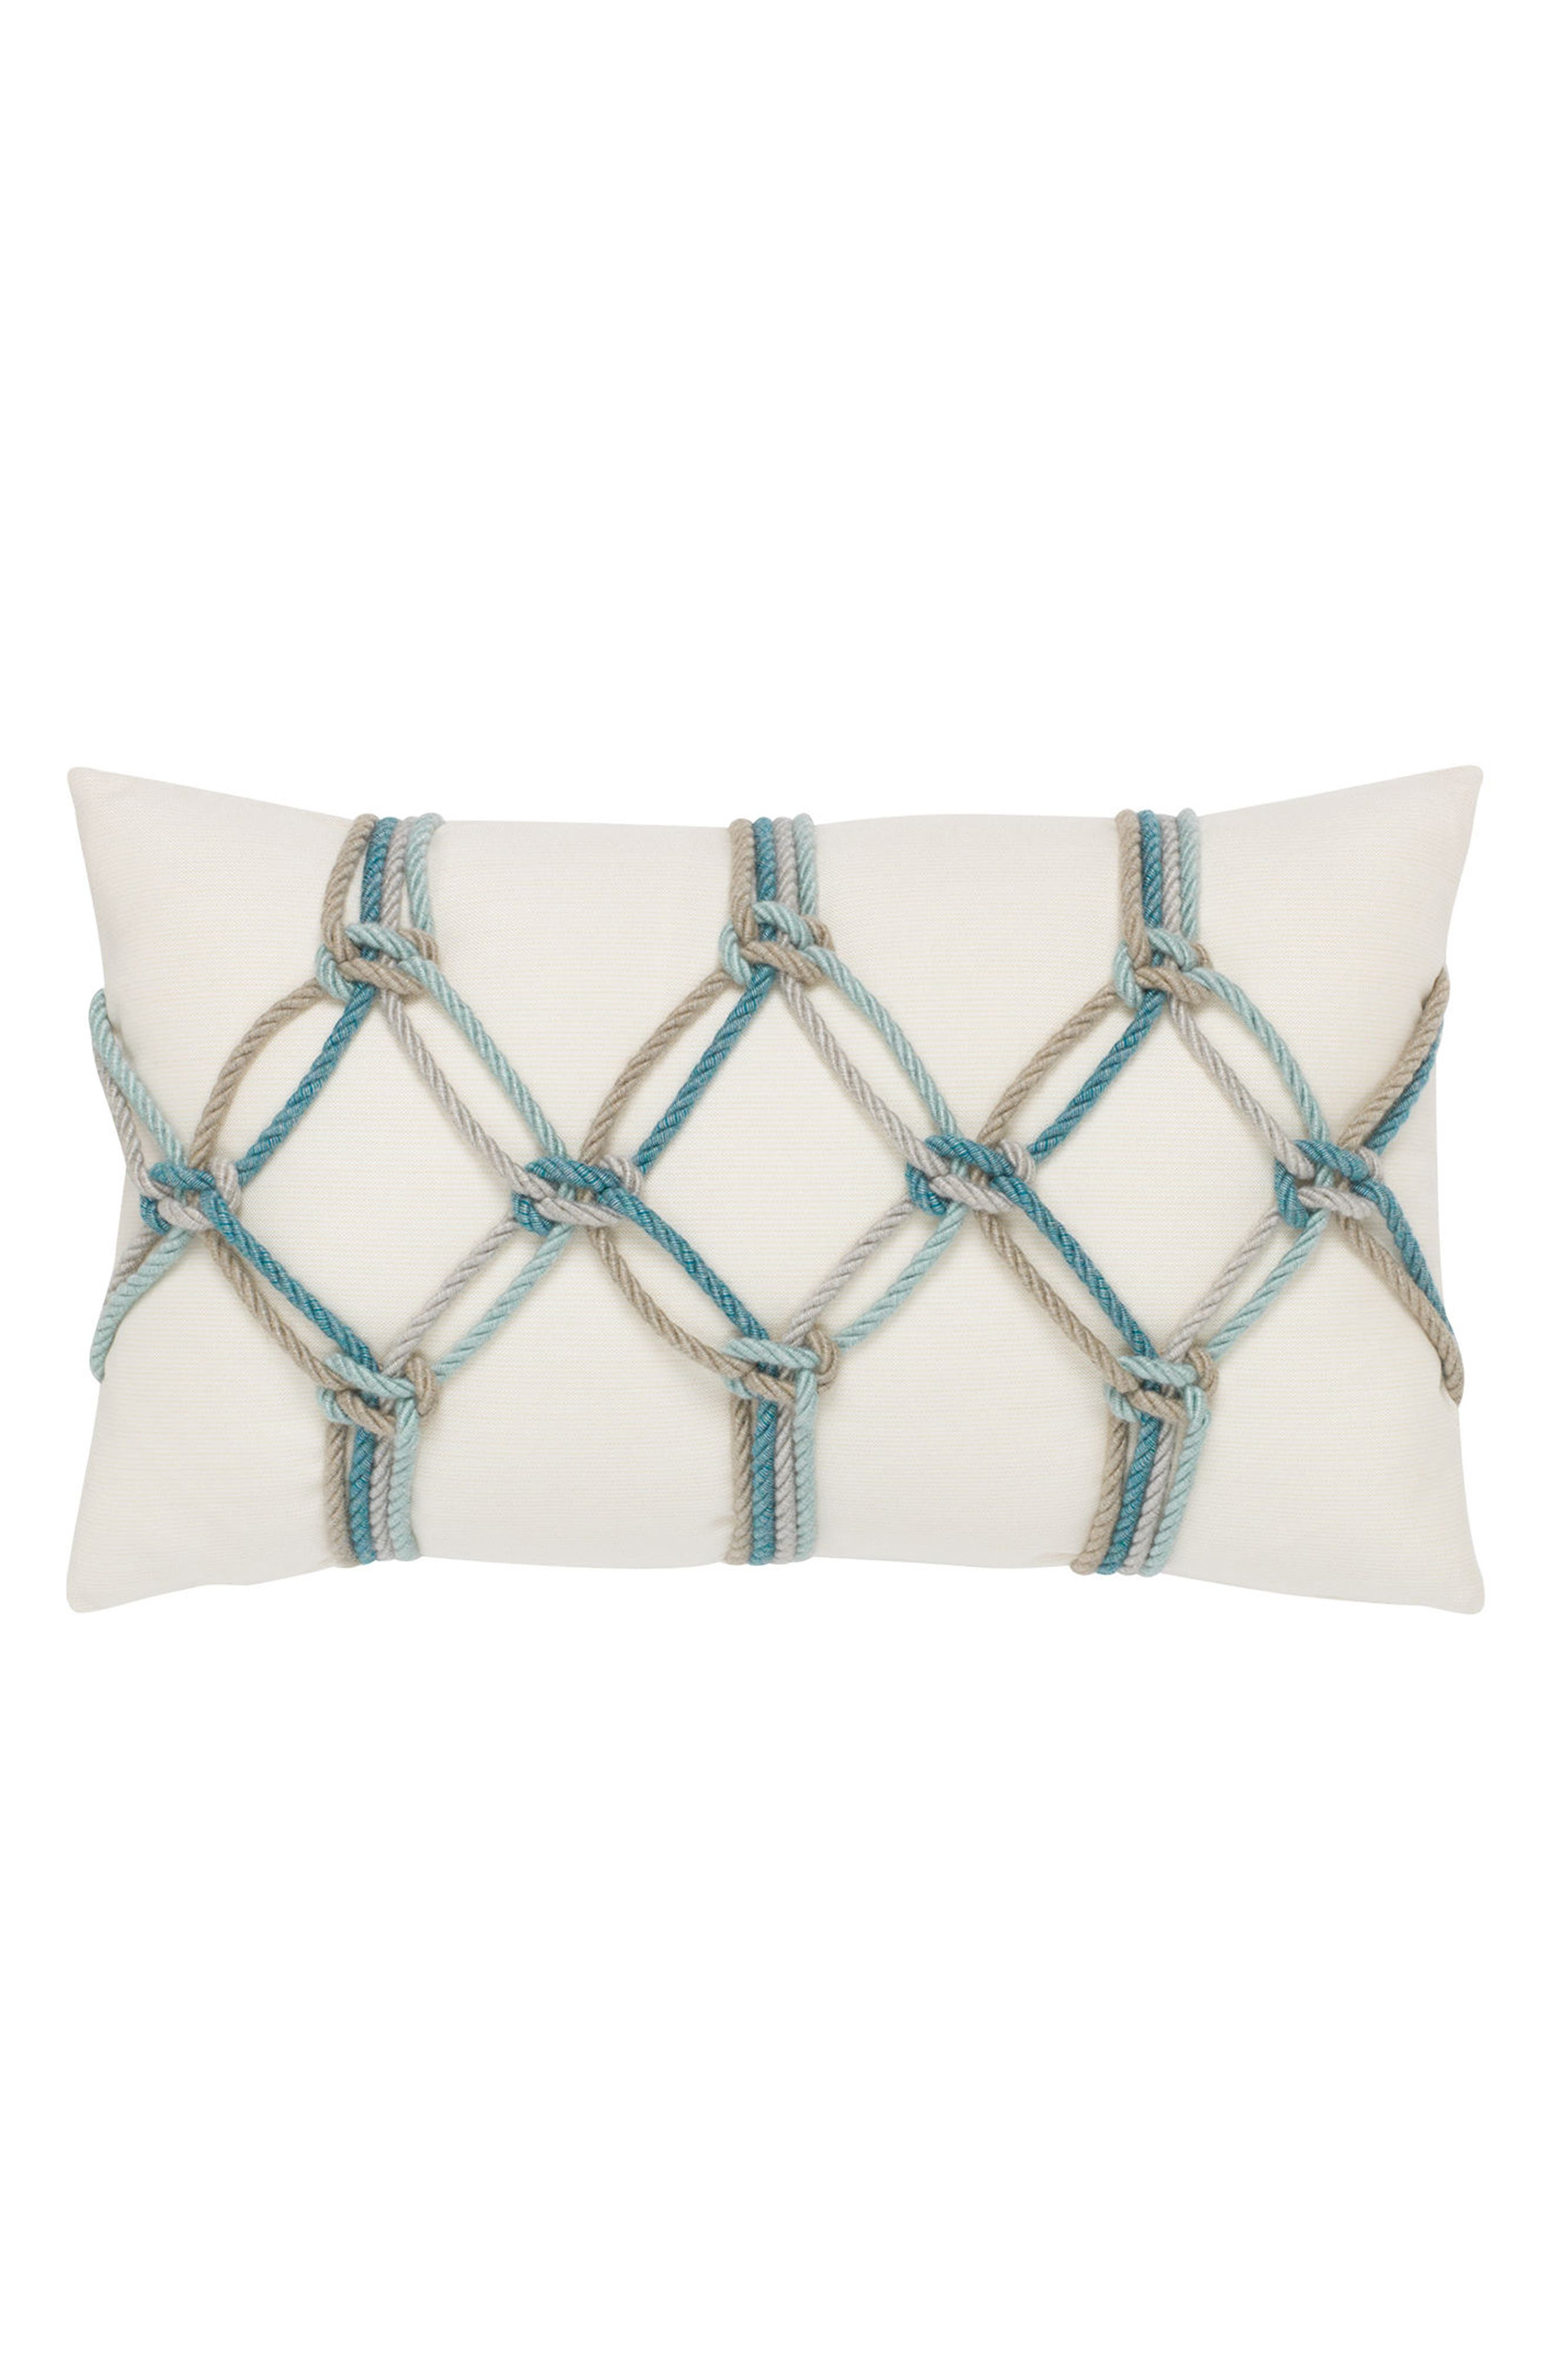 Aqua Rope Indoor/Outdoor Accent Pillow,                         Main,                         color, Off White Blue